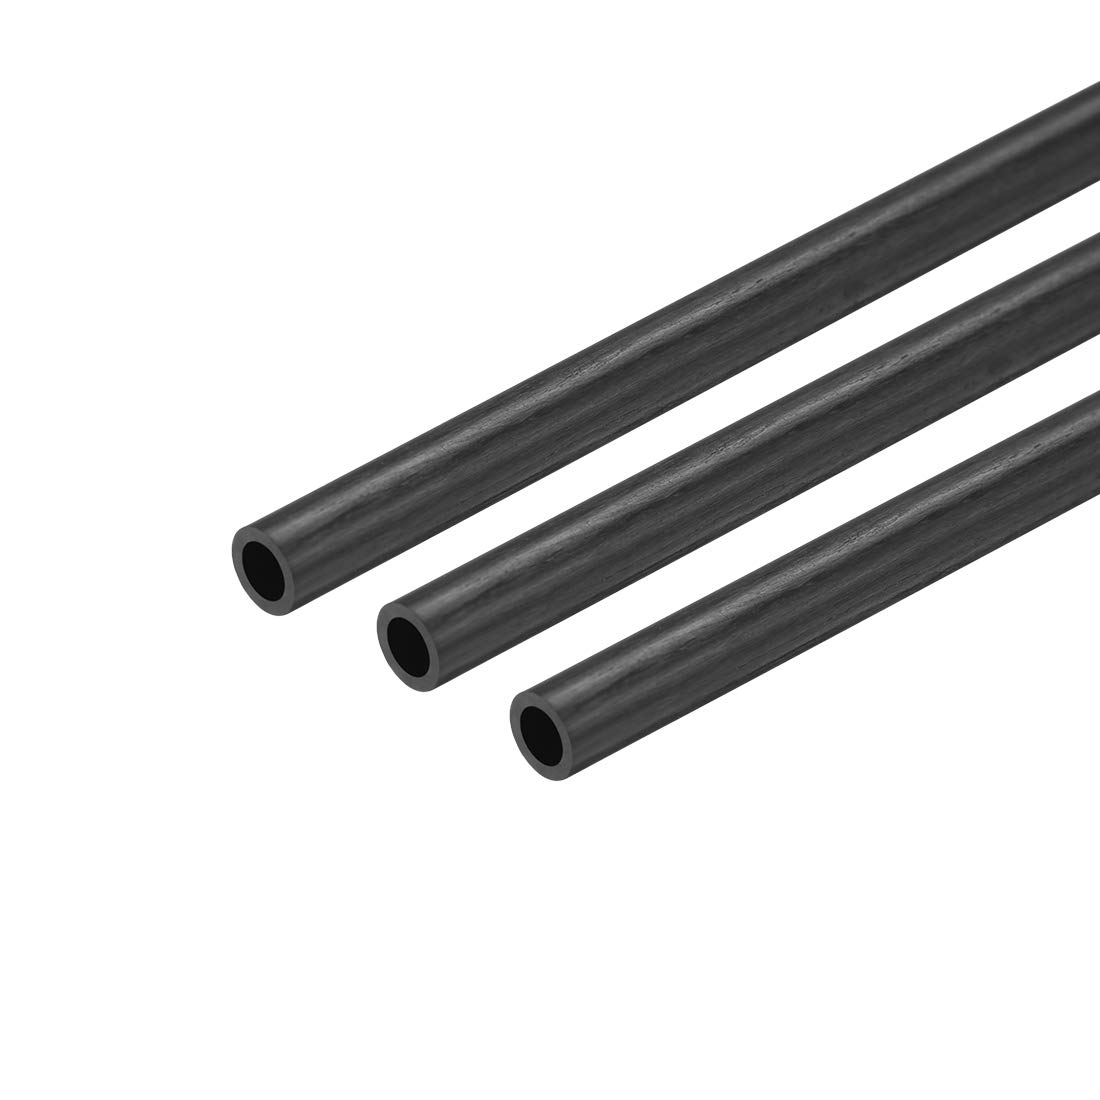 uxcell Carbon Fiber Round Tube x 200mm Wi 3mm 2mm List price Selling and selling